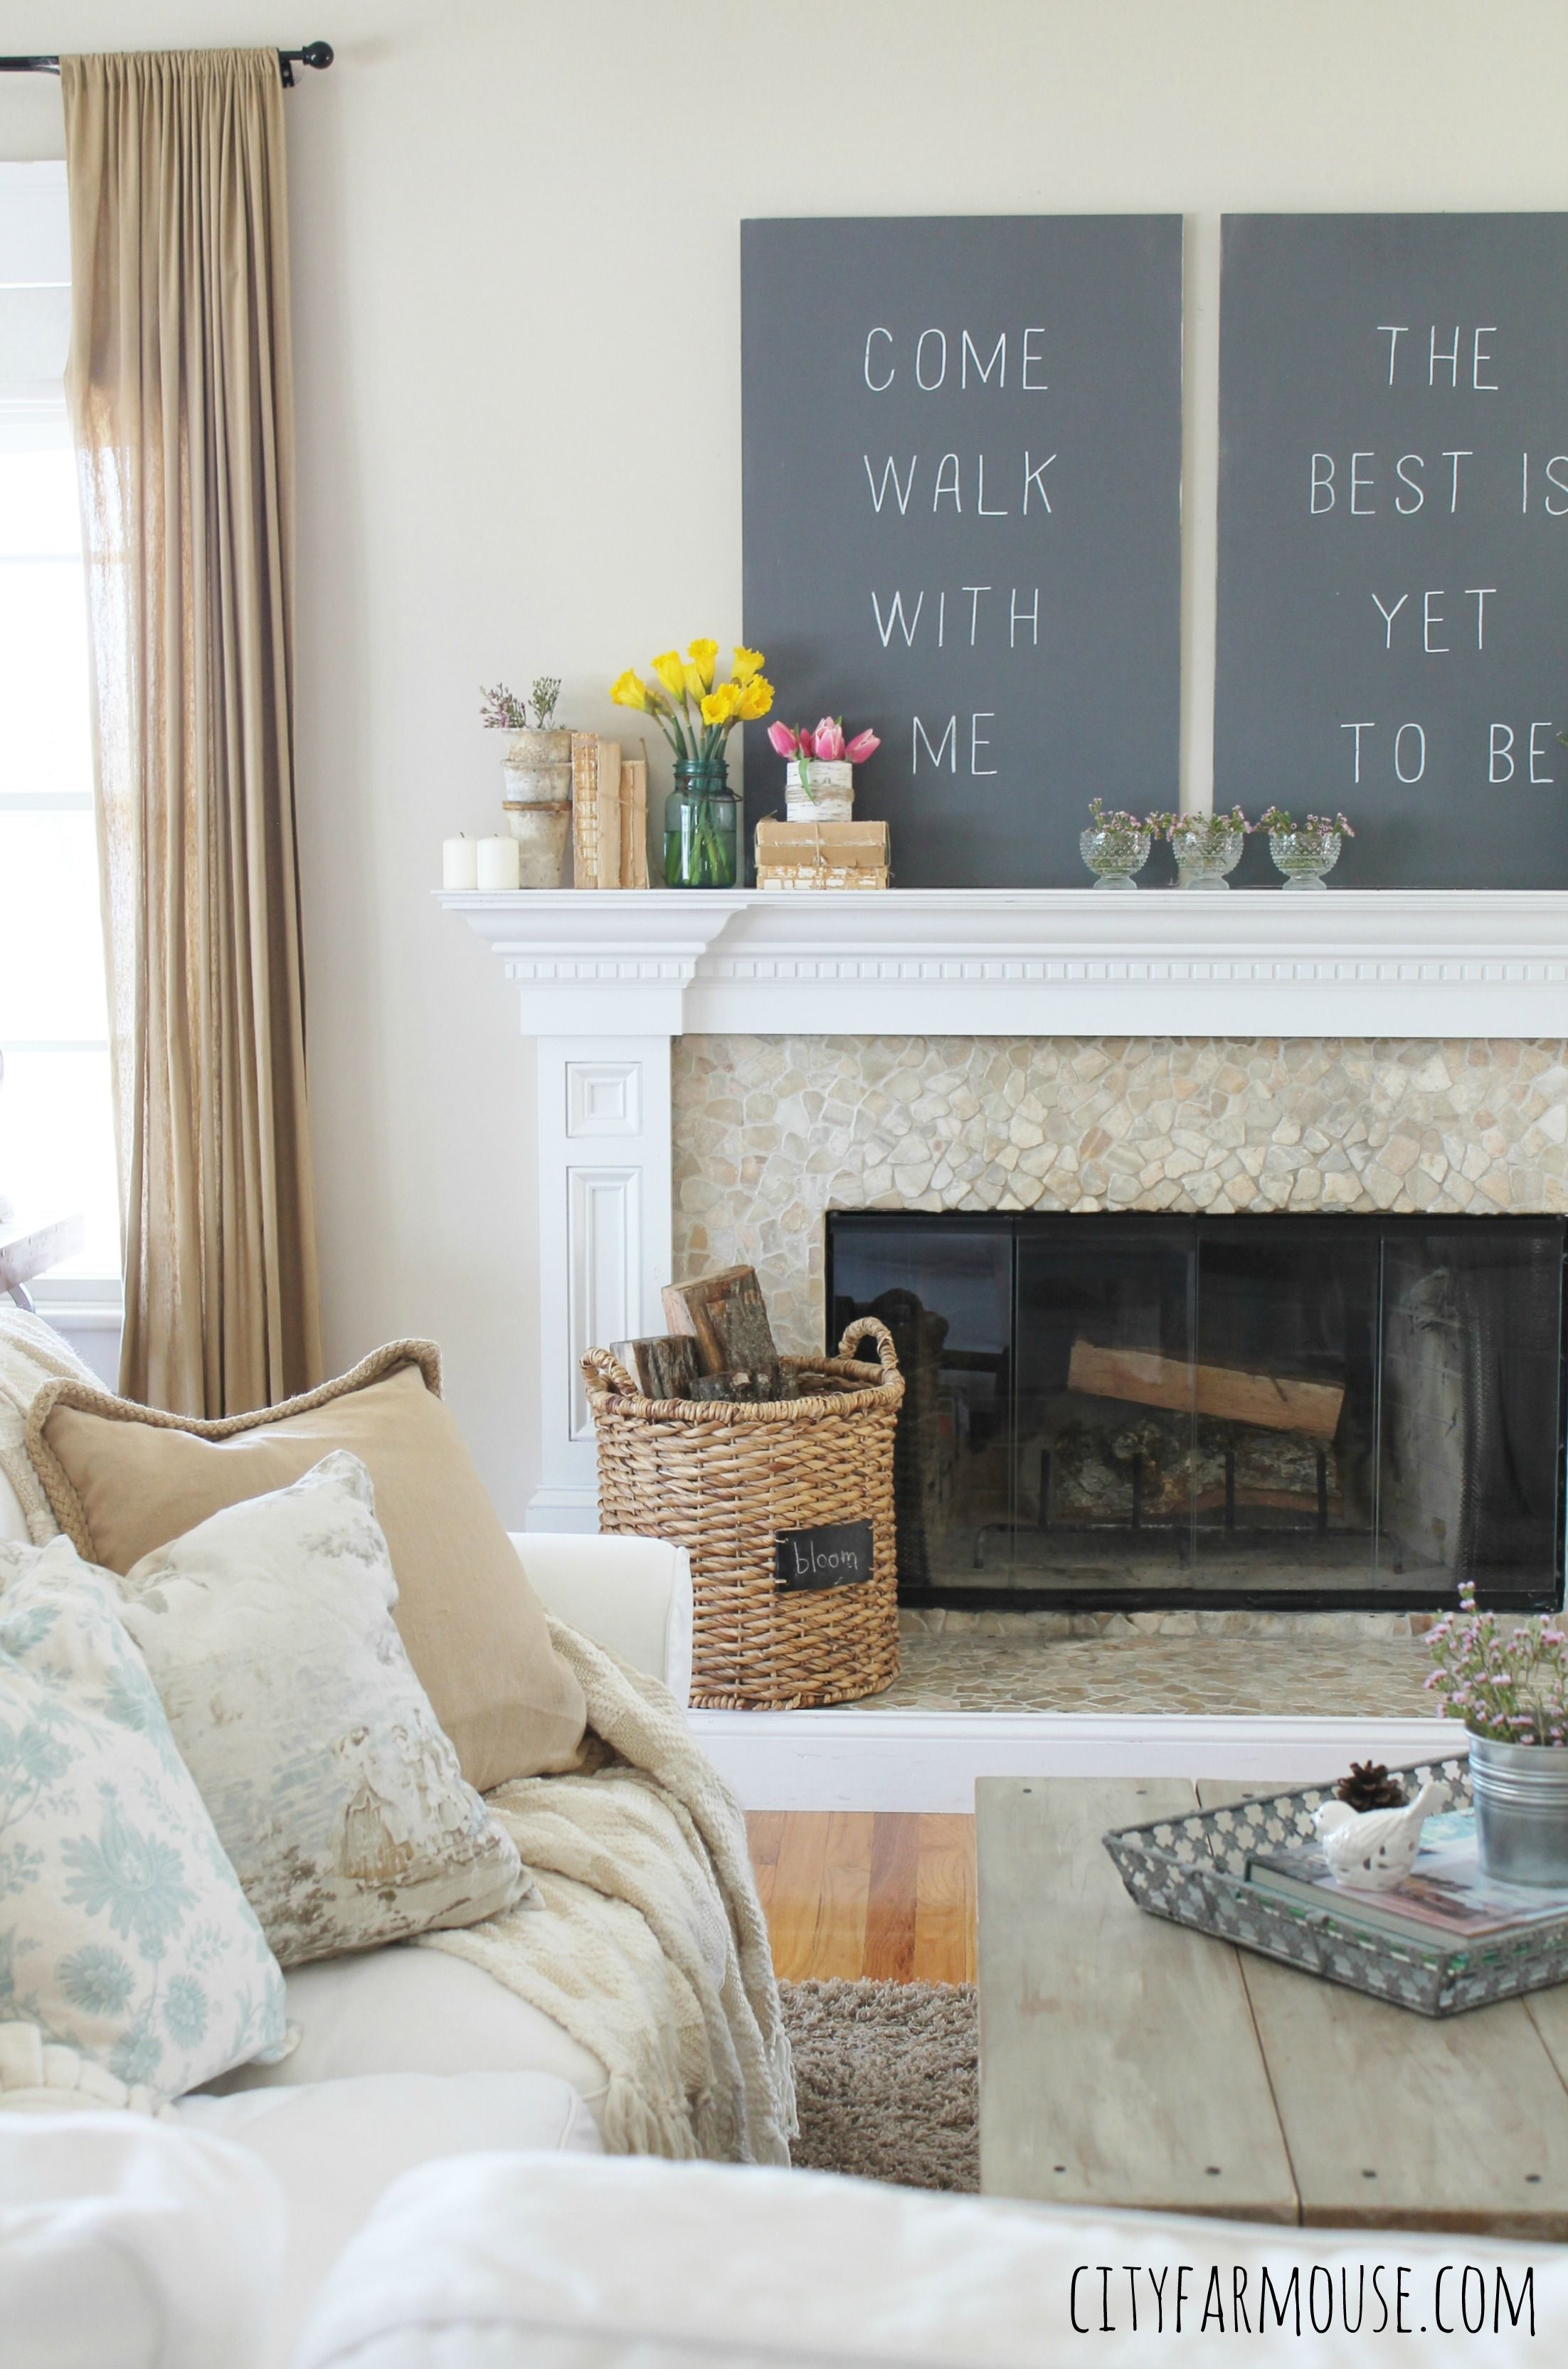 Love this rustic farmhouse with a shabby